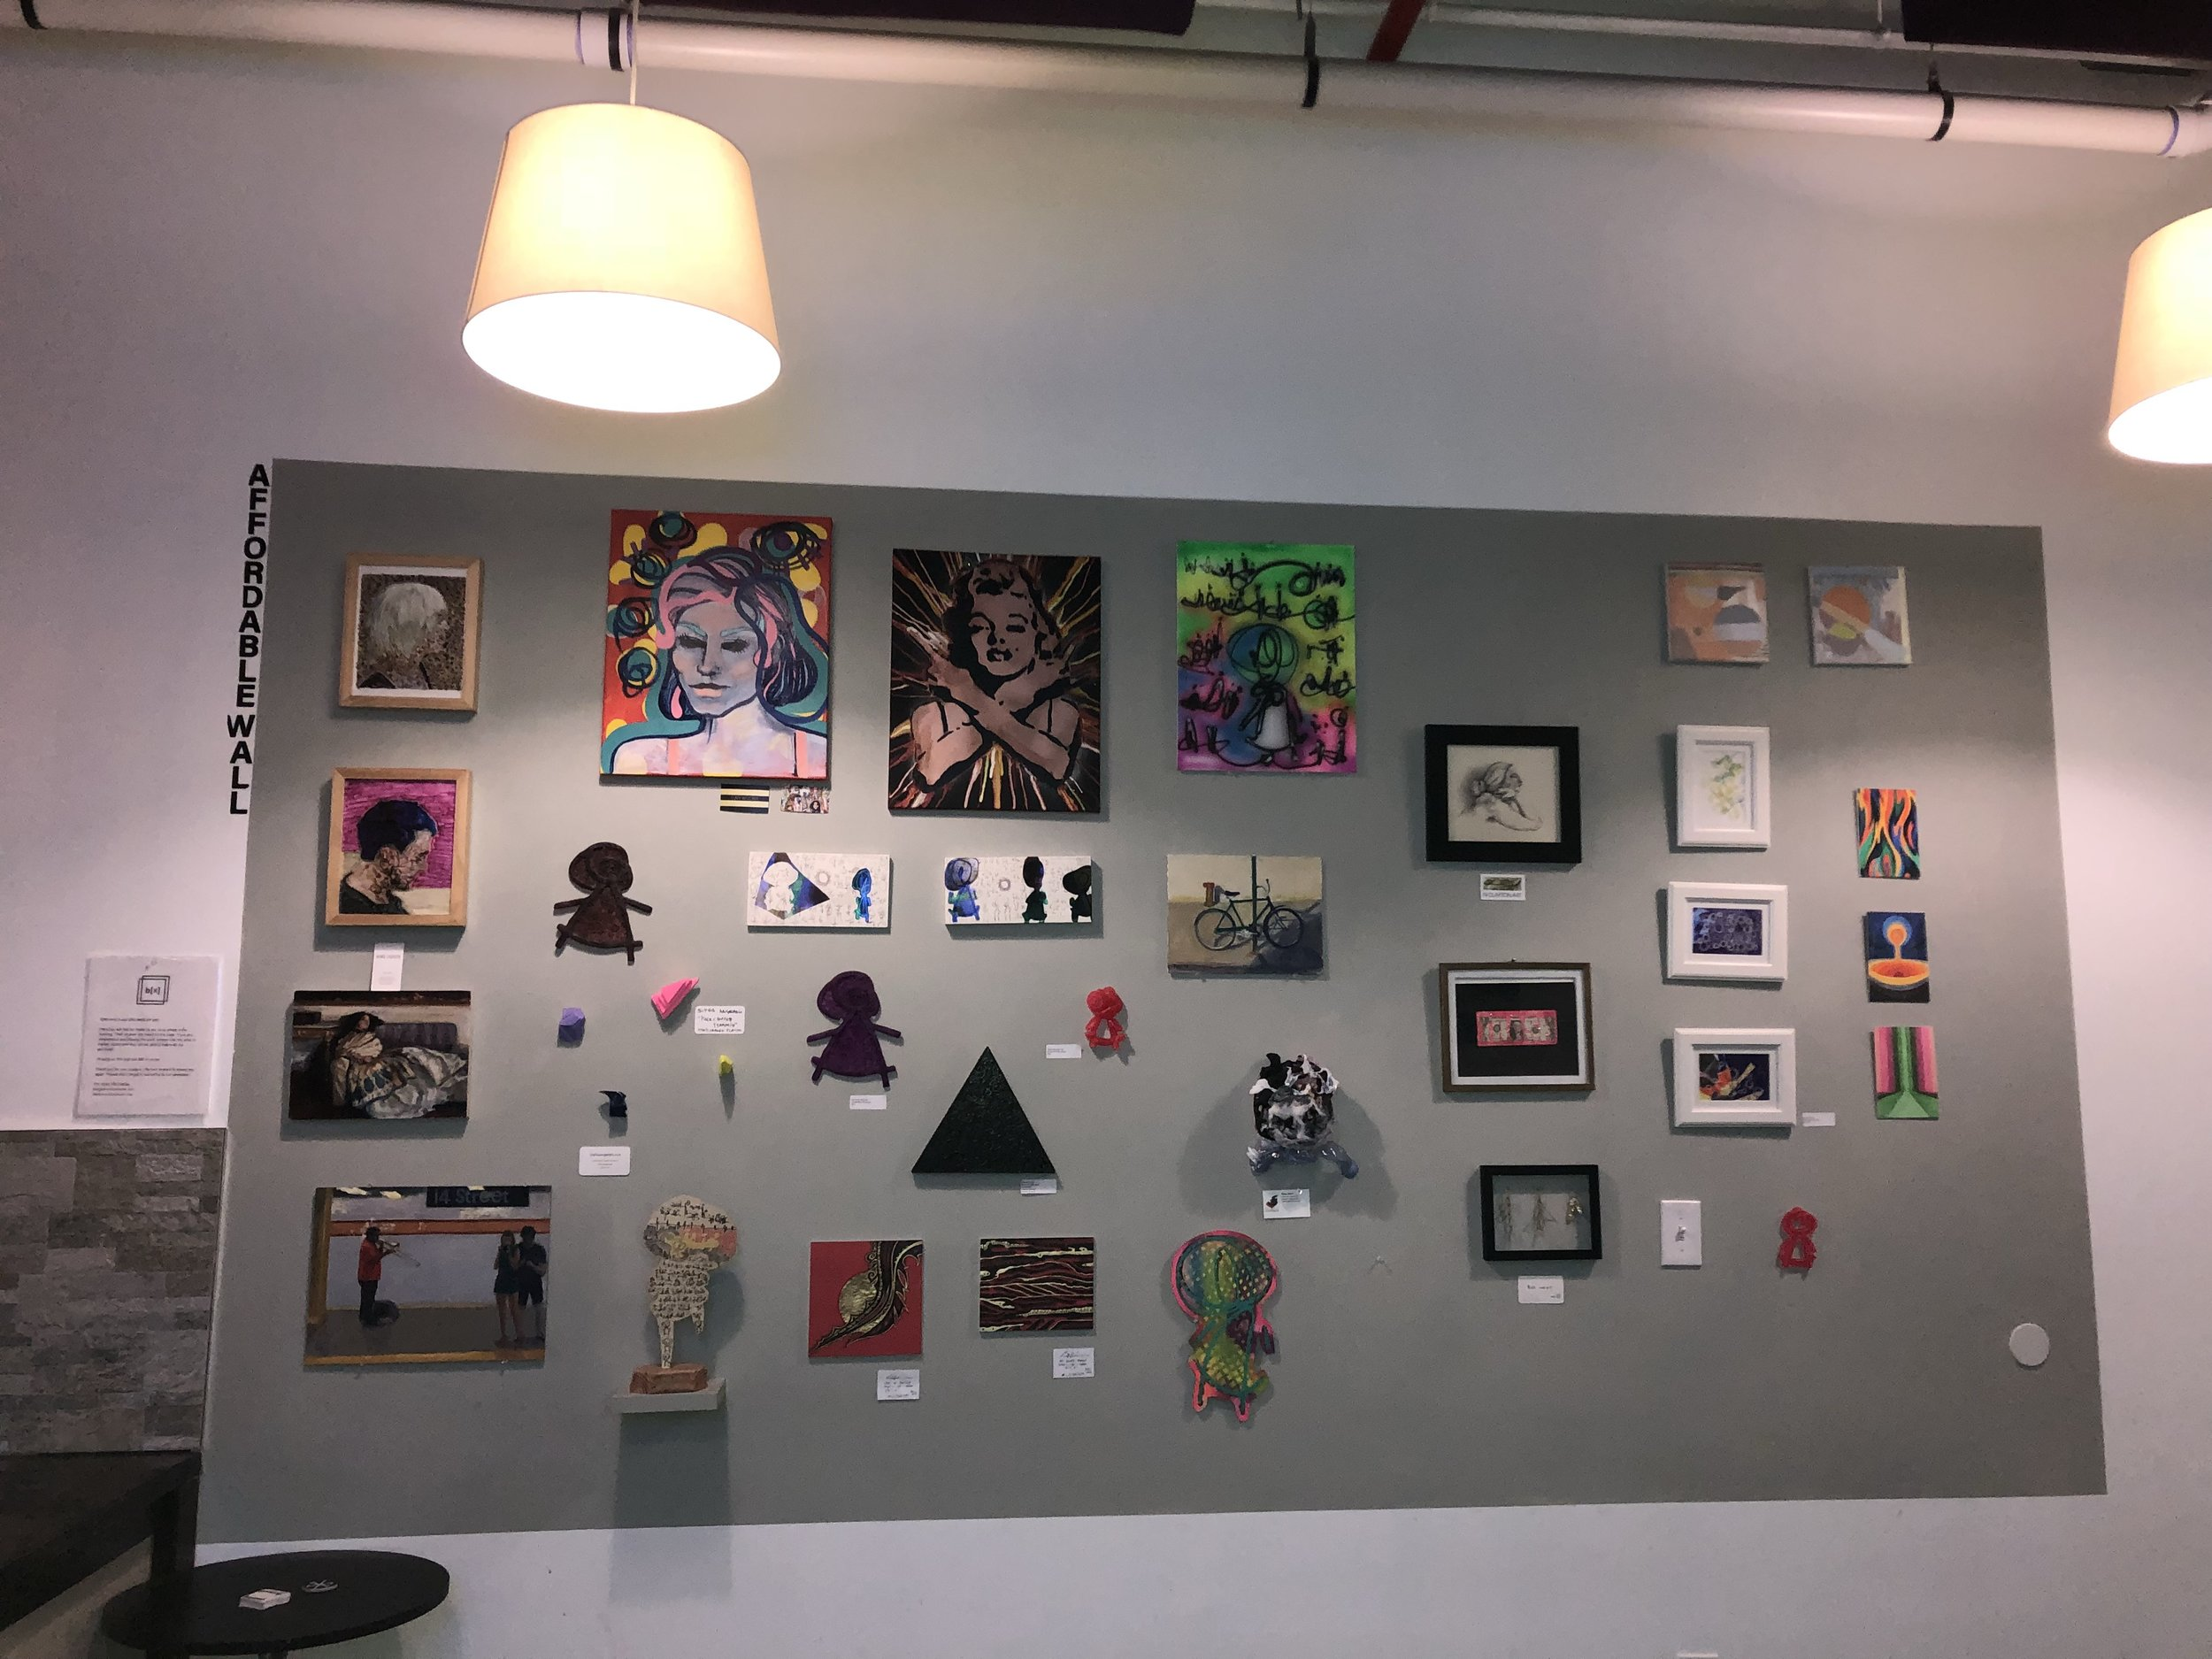 Affordable Wall where our members have the opportunity to sell original pieces for $50 or less